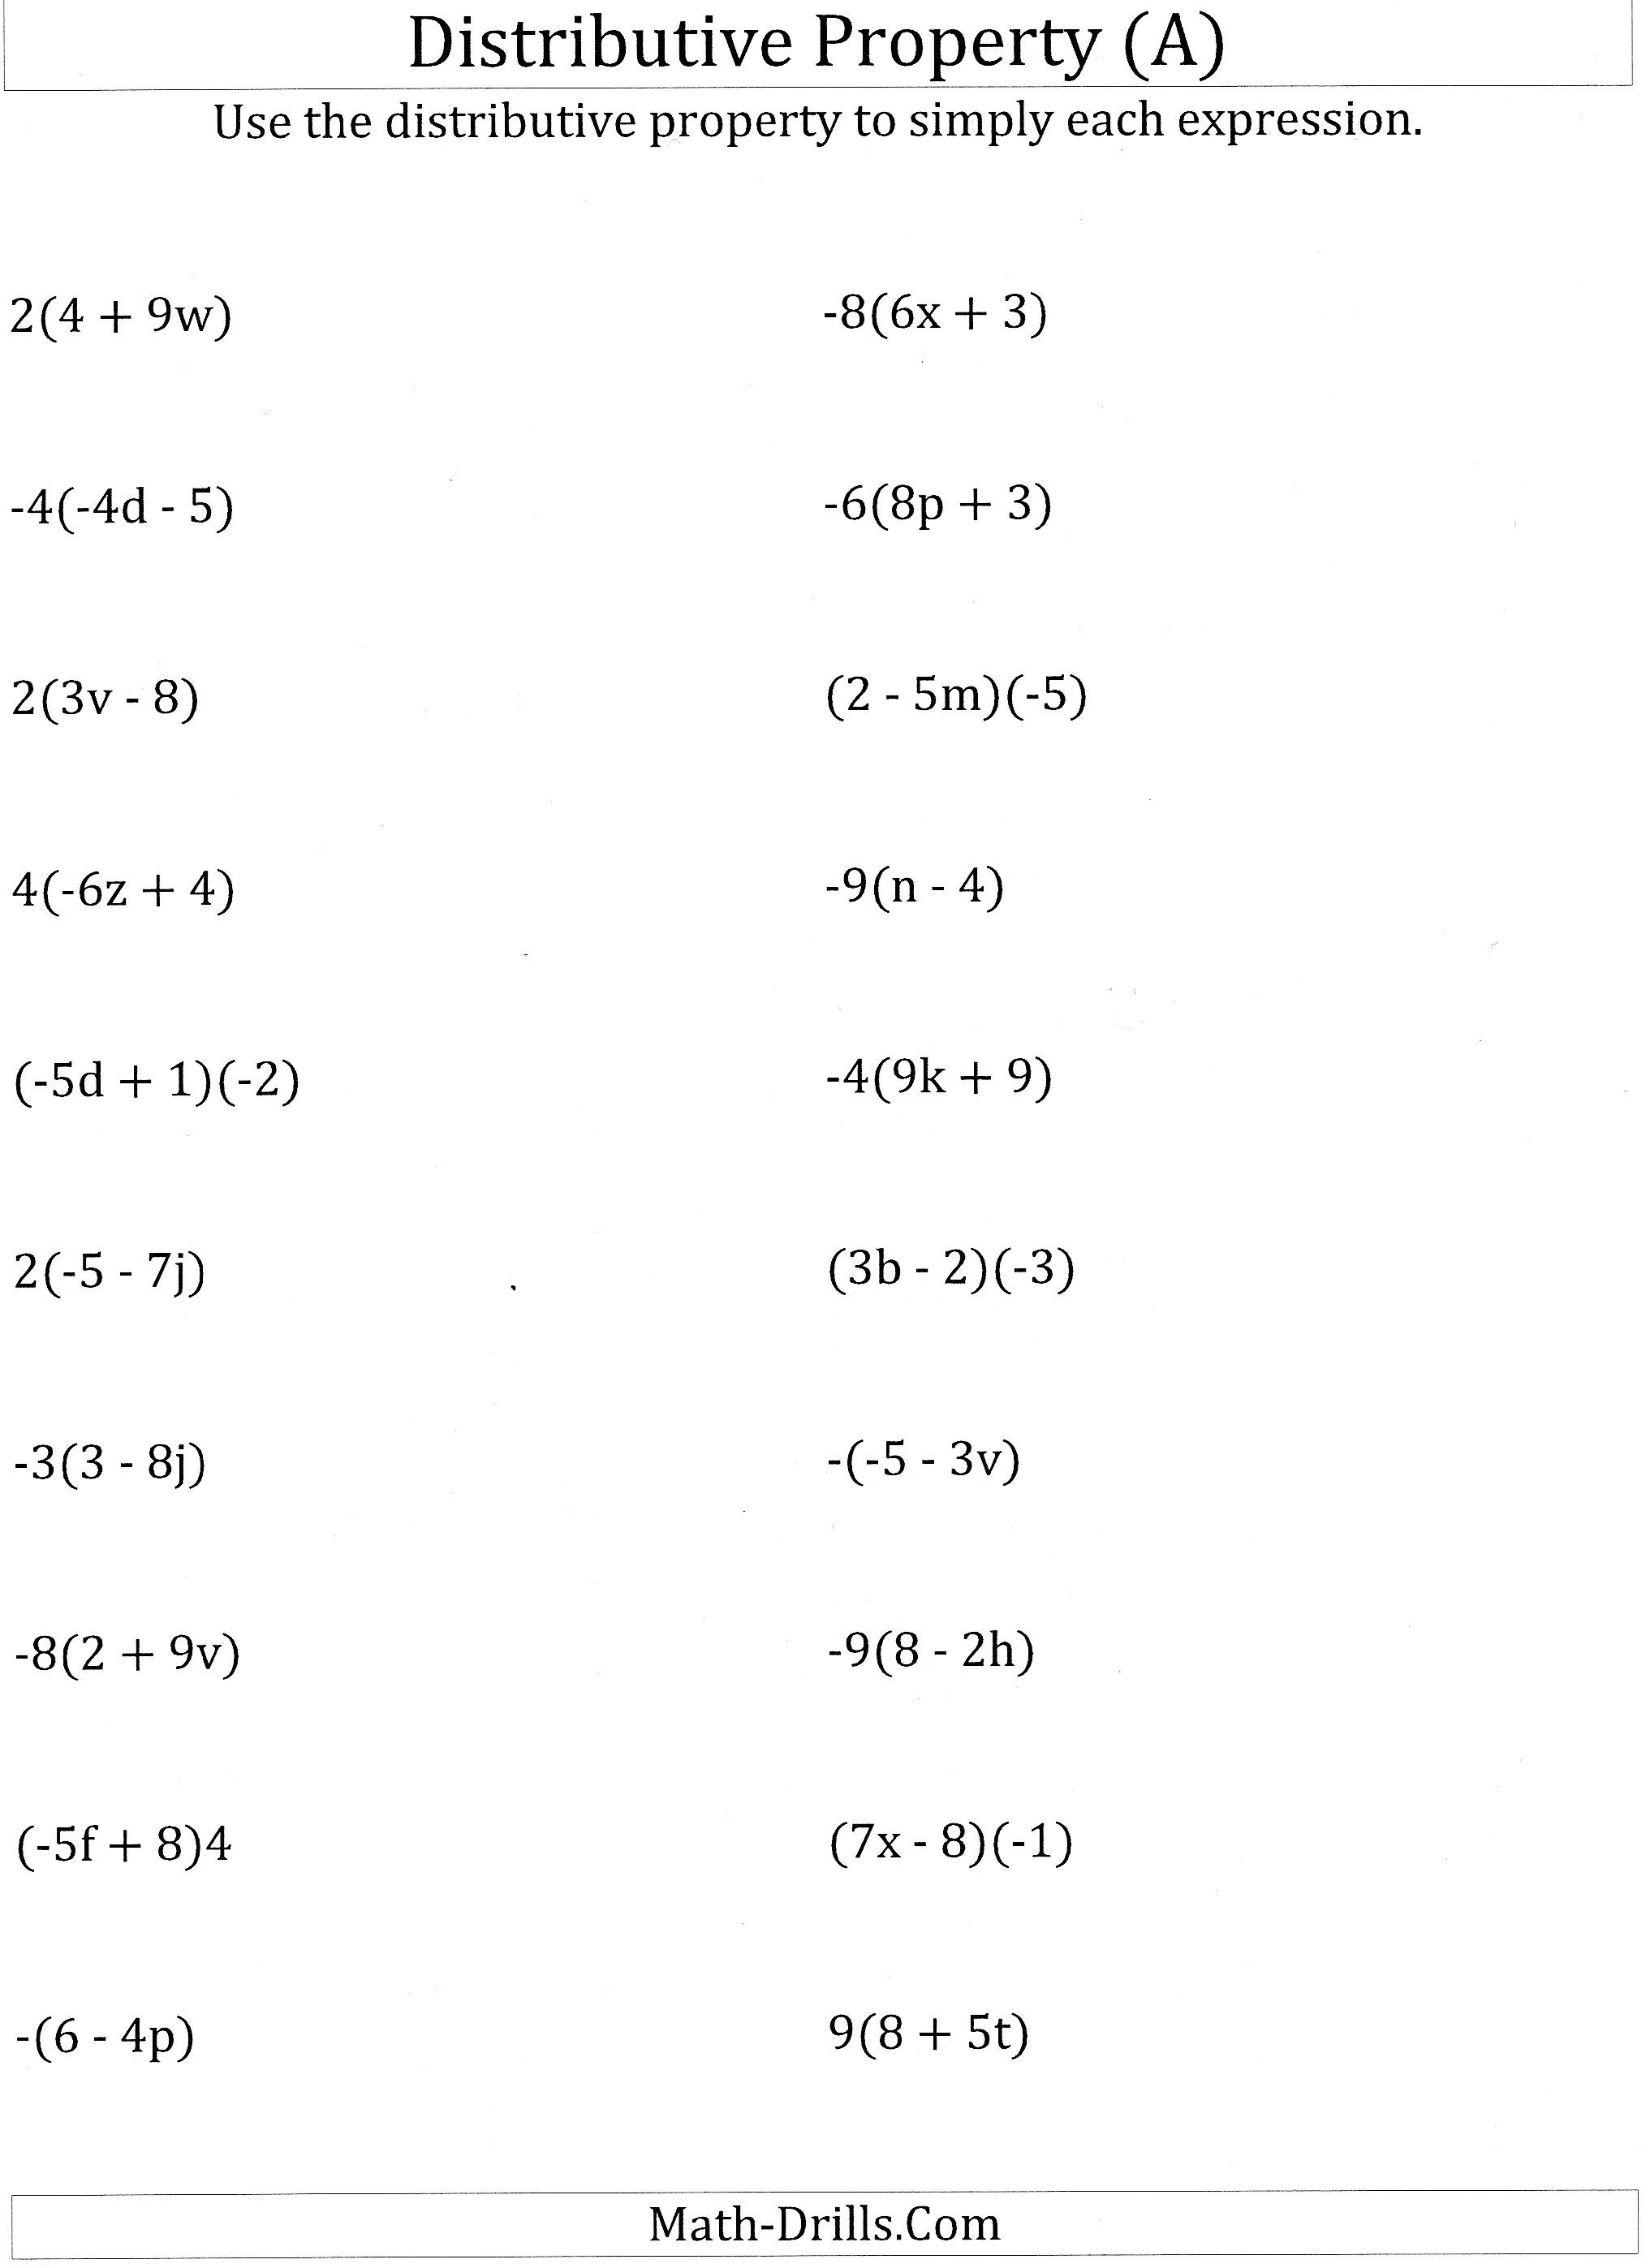 worksheet Distributive Property Worksheets 7th Grade worksheet 12241584 math worksheets distributive property using using